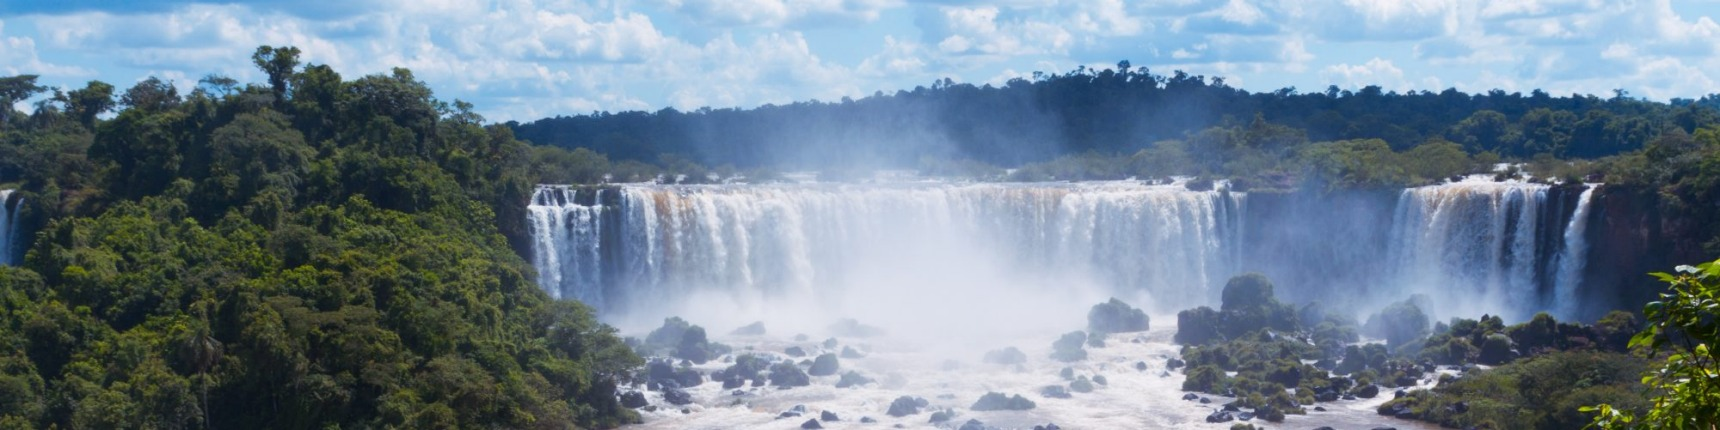 Paraguay, waterfall